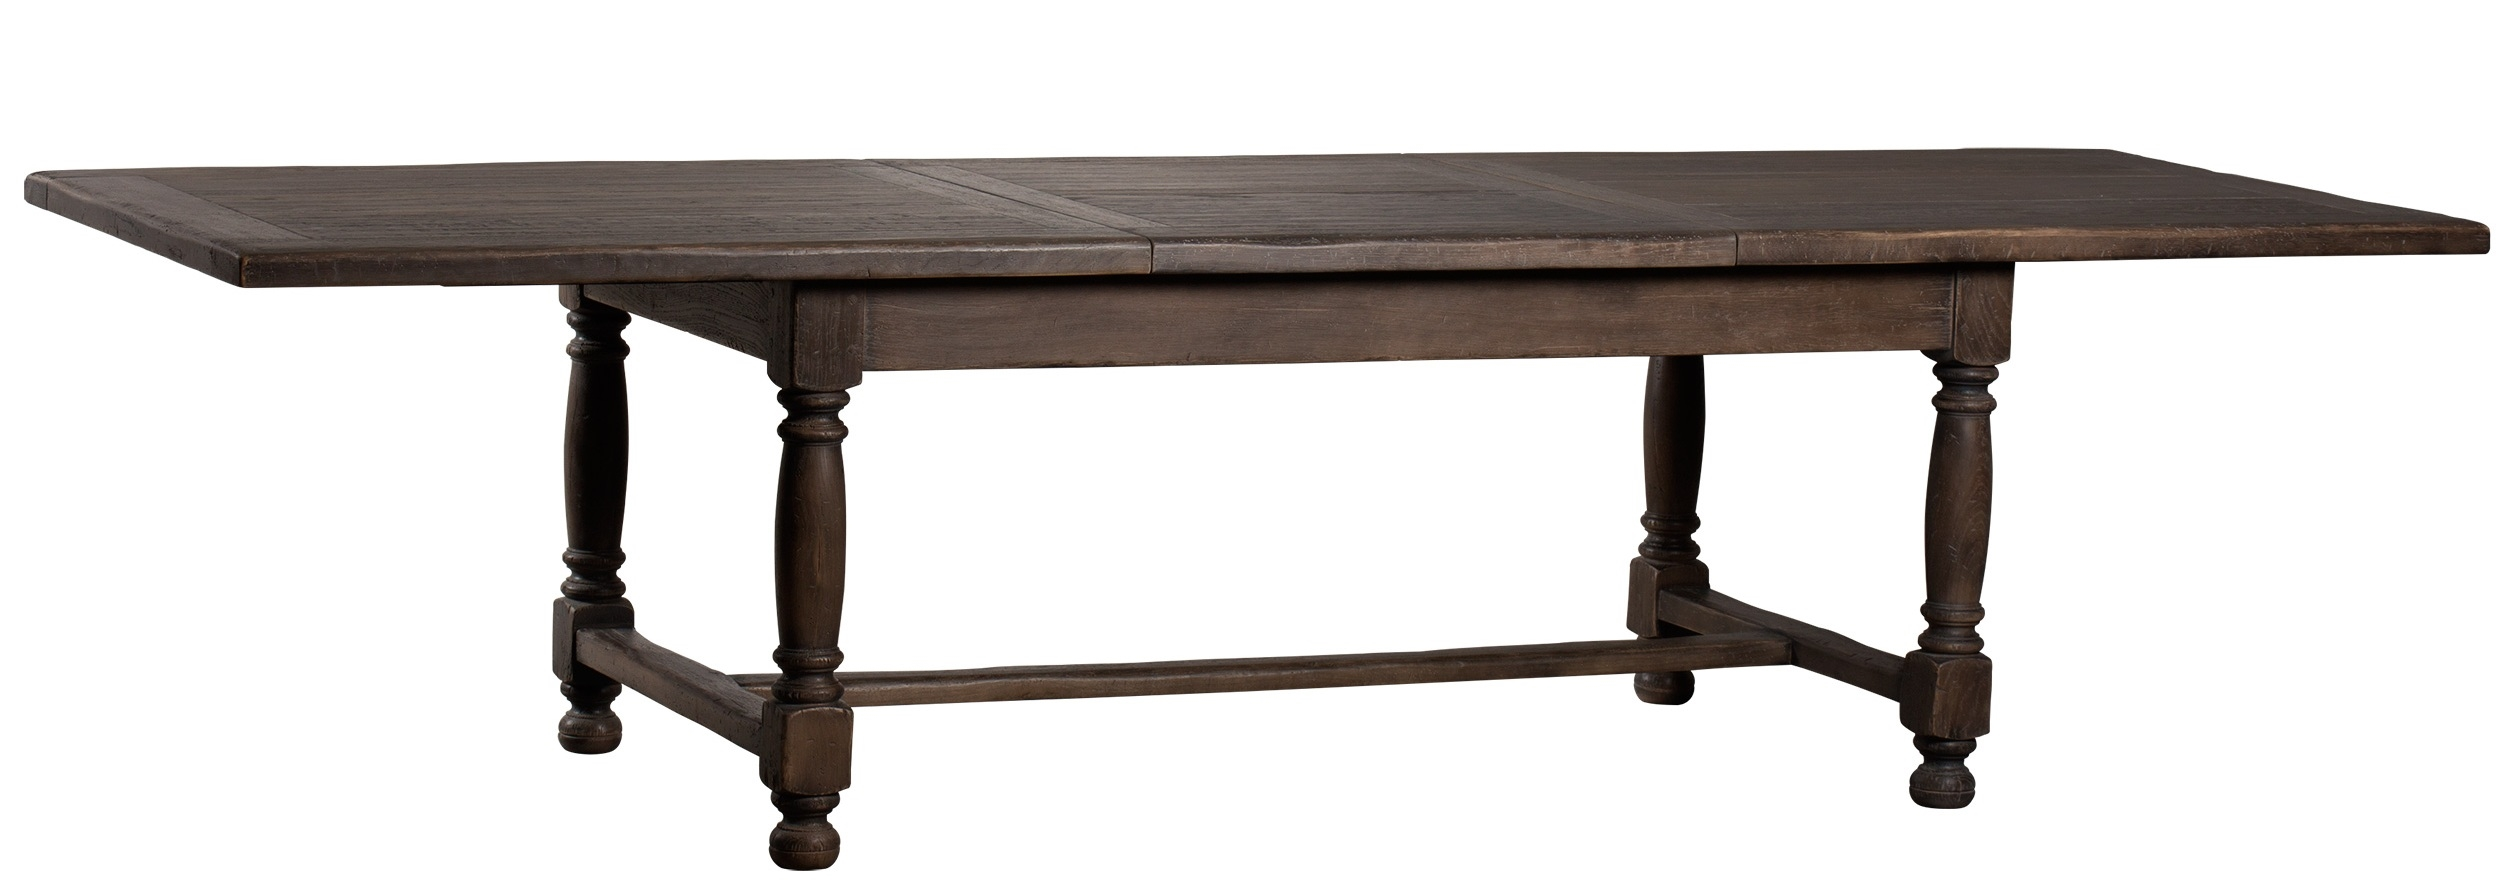 Luxury extending dining table french country home collection for Luxury dinner table